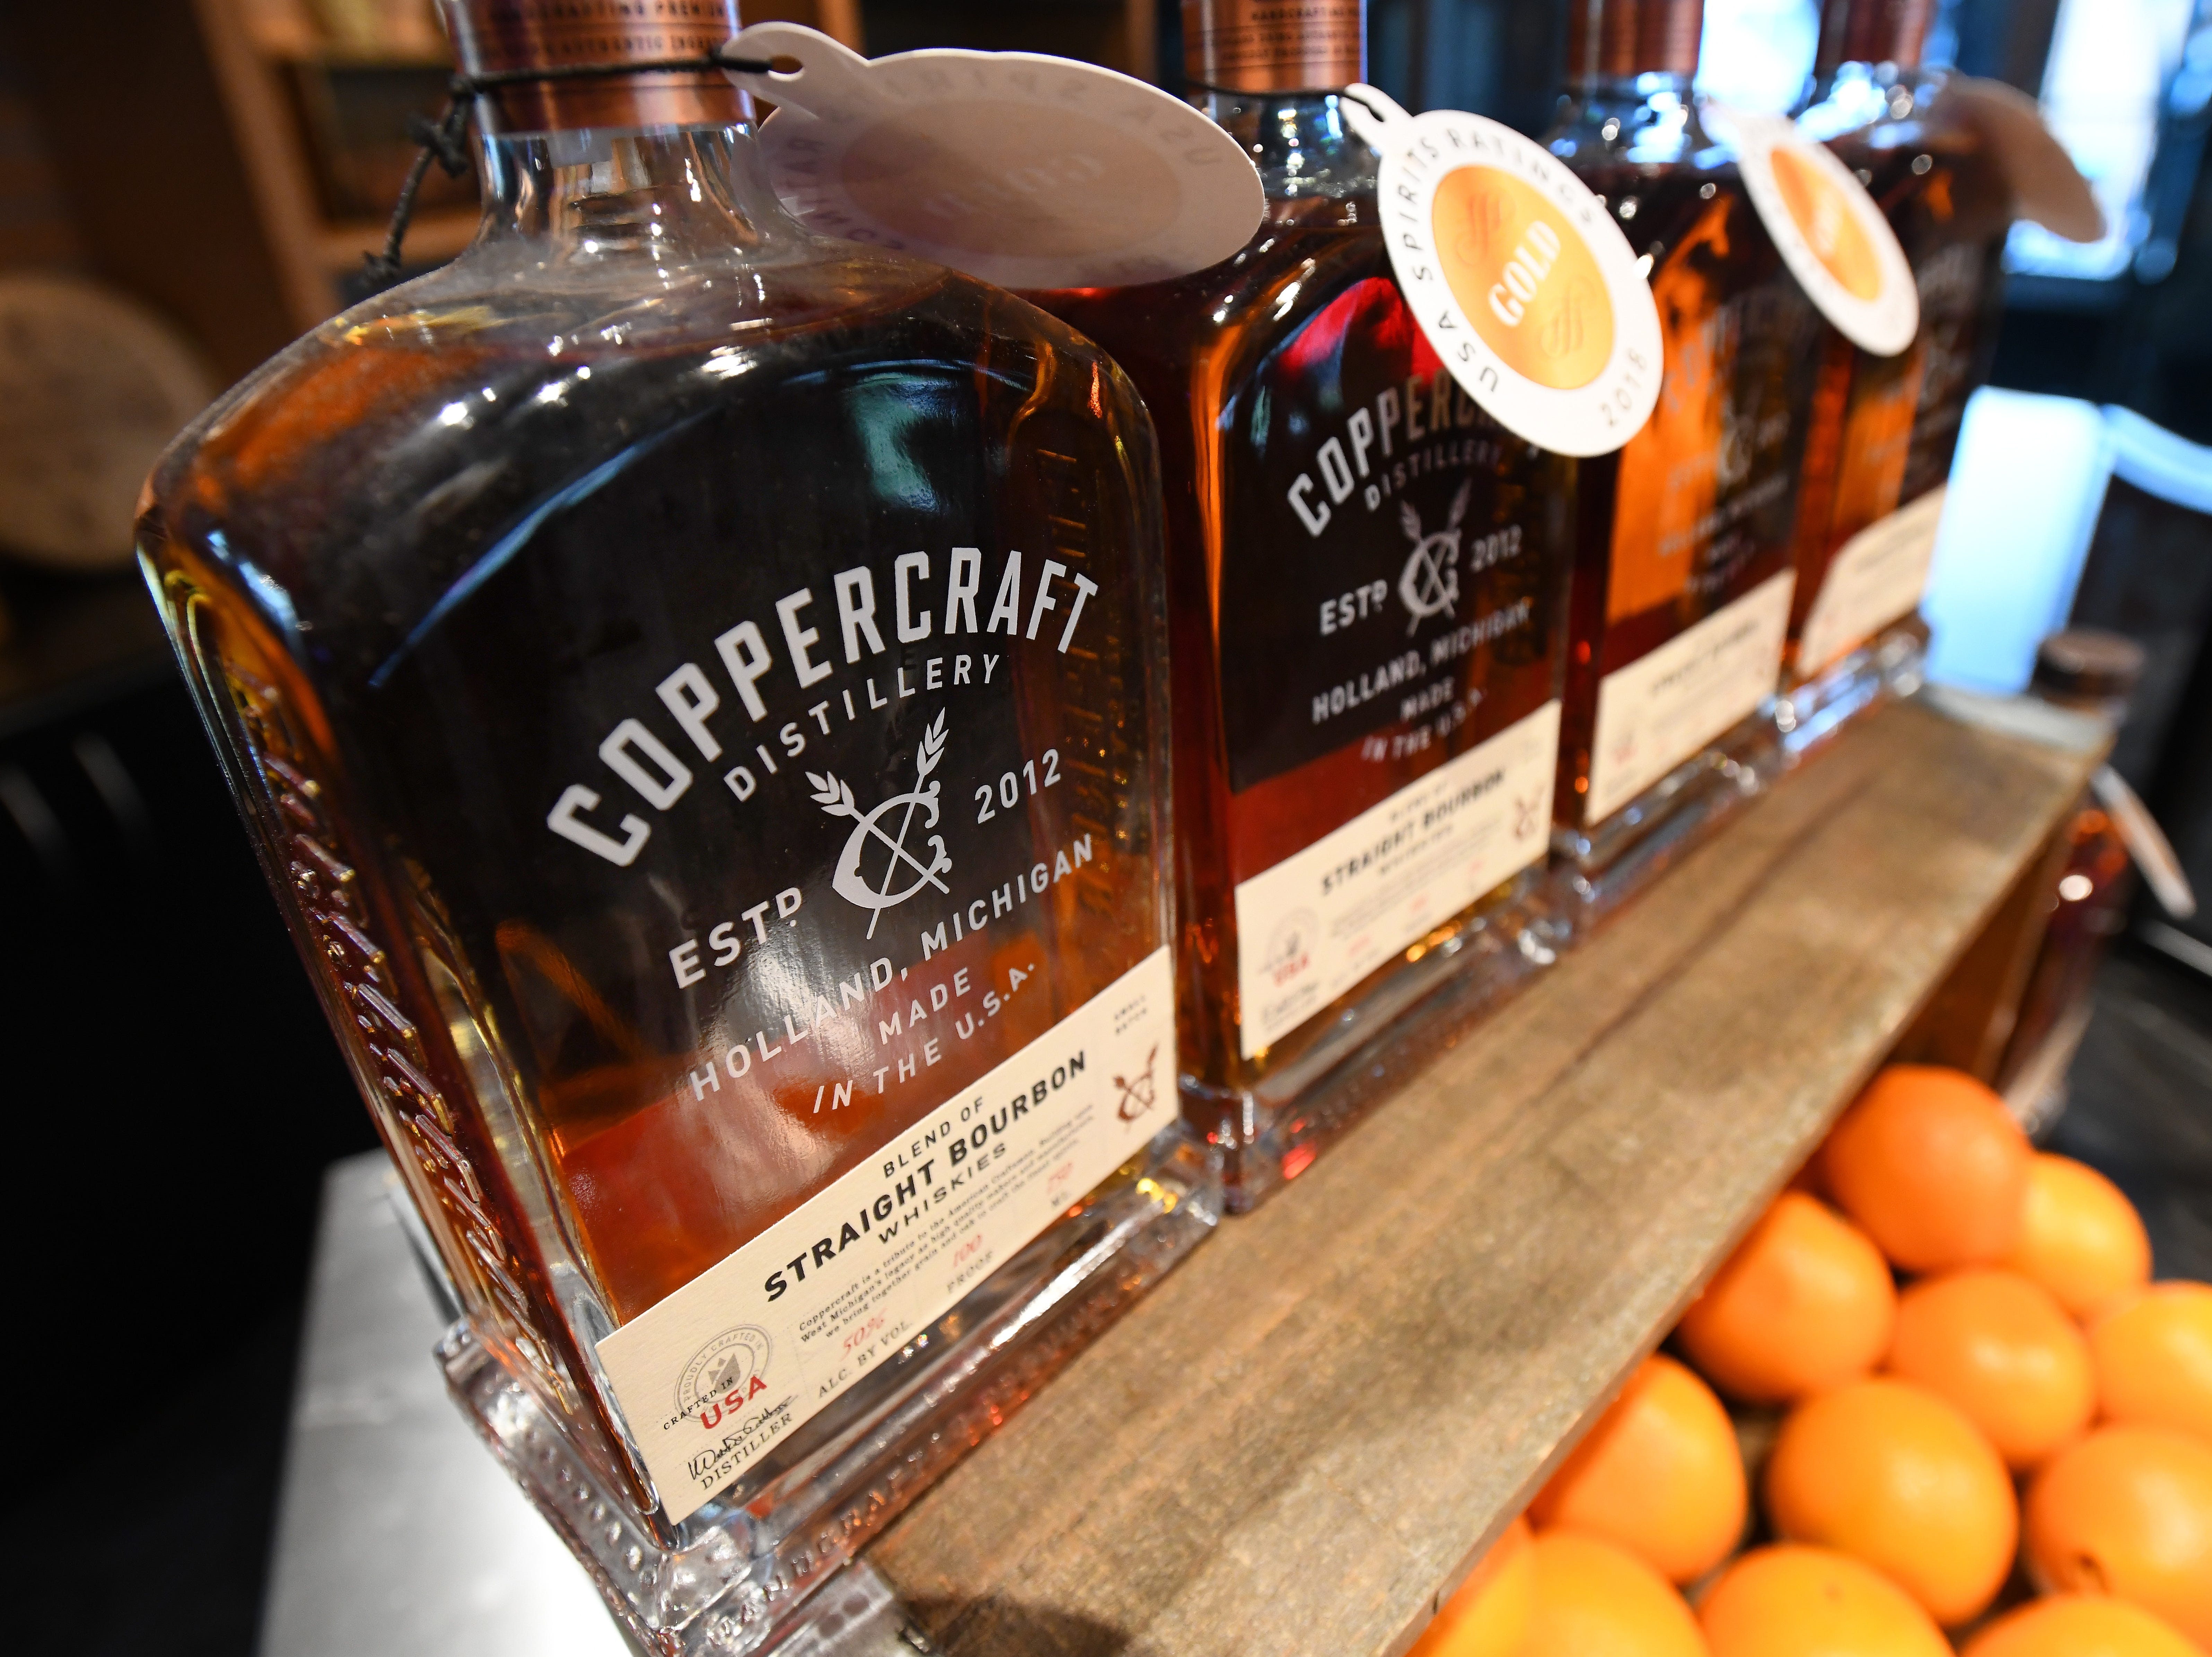 Bourbon and vodka from Holland, Michigan distillery, Coppercraft.